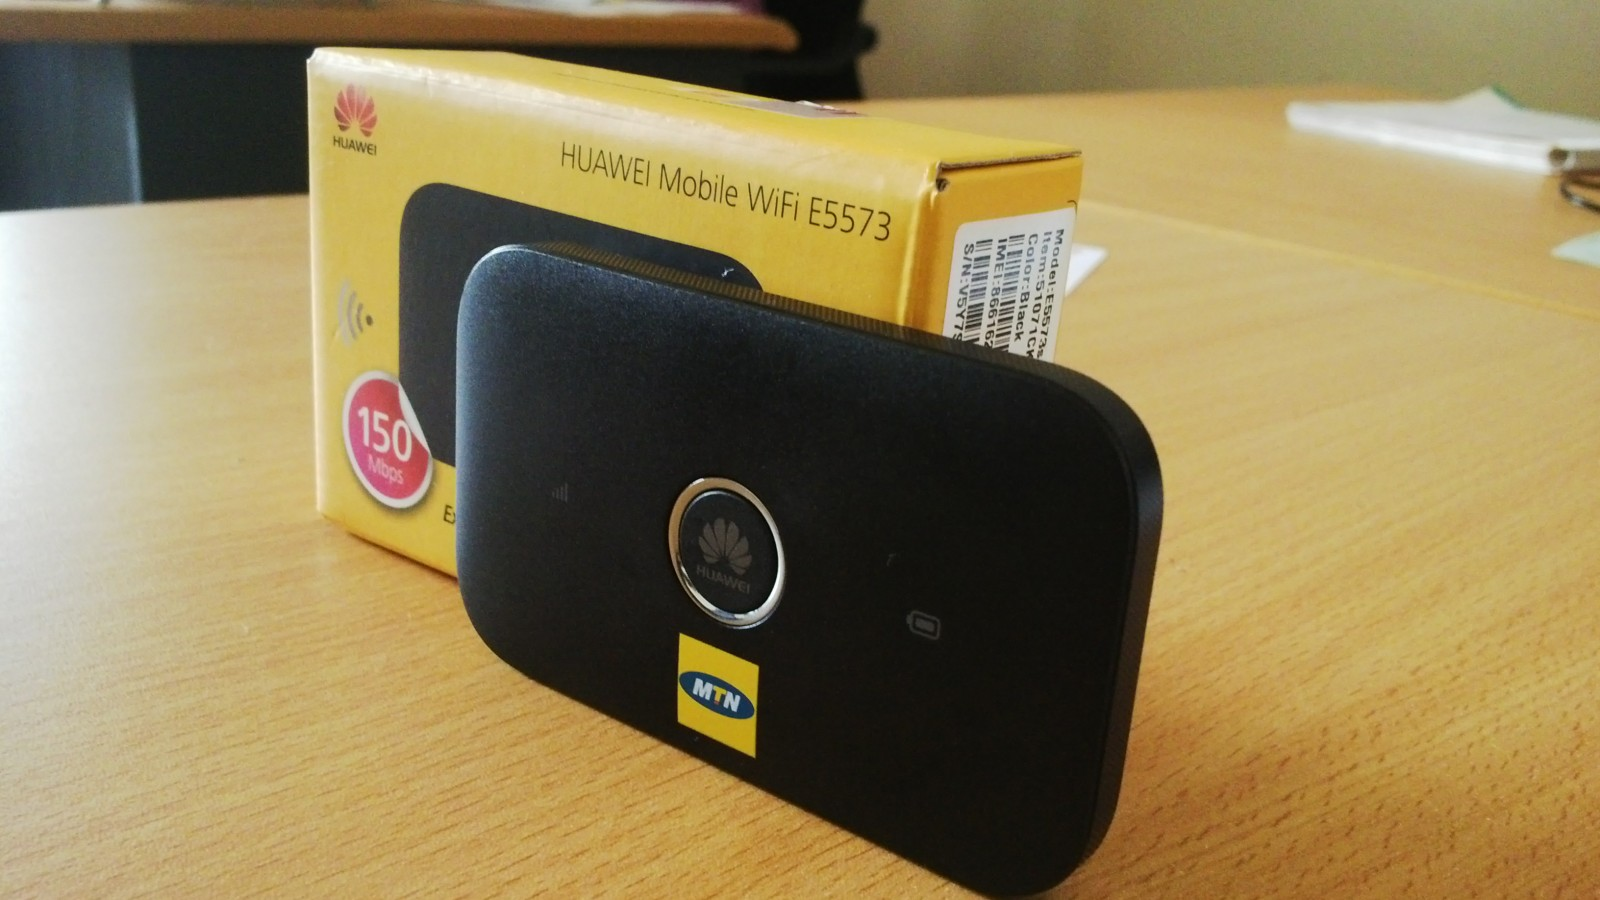 Review: MTN Uganda's Huawei E5573 4G MiFi - PC Tech Magazine